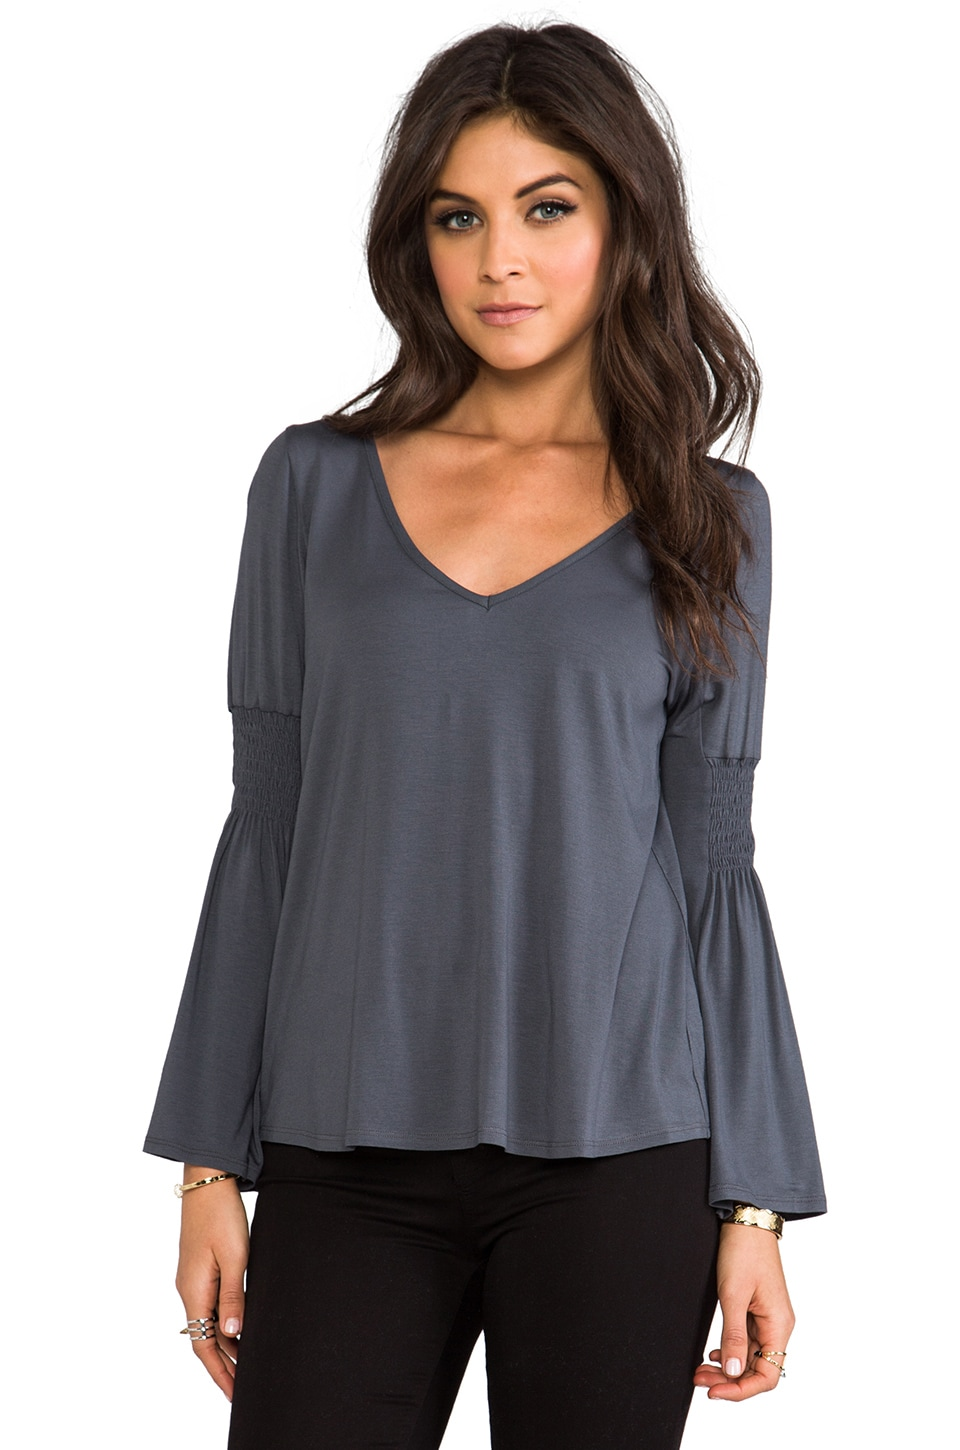 James & Joy Mallory Top in Charcoal